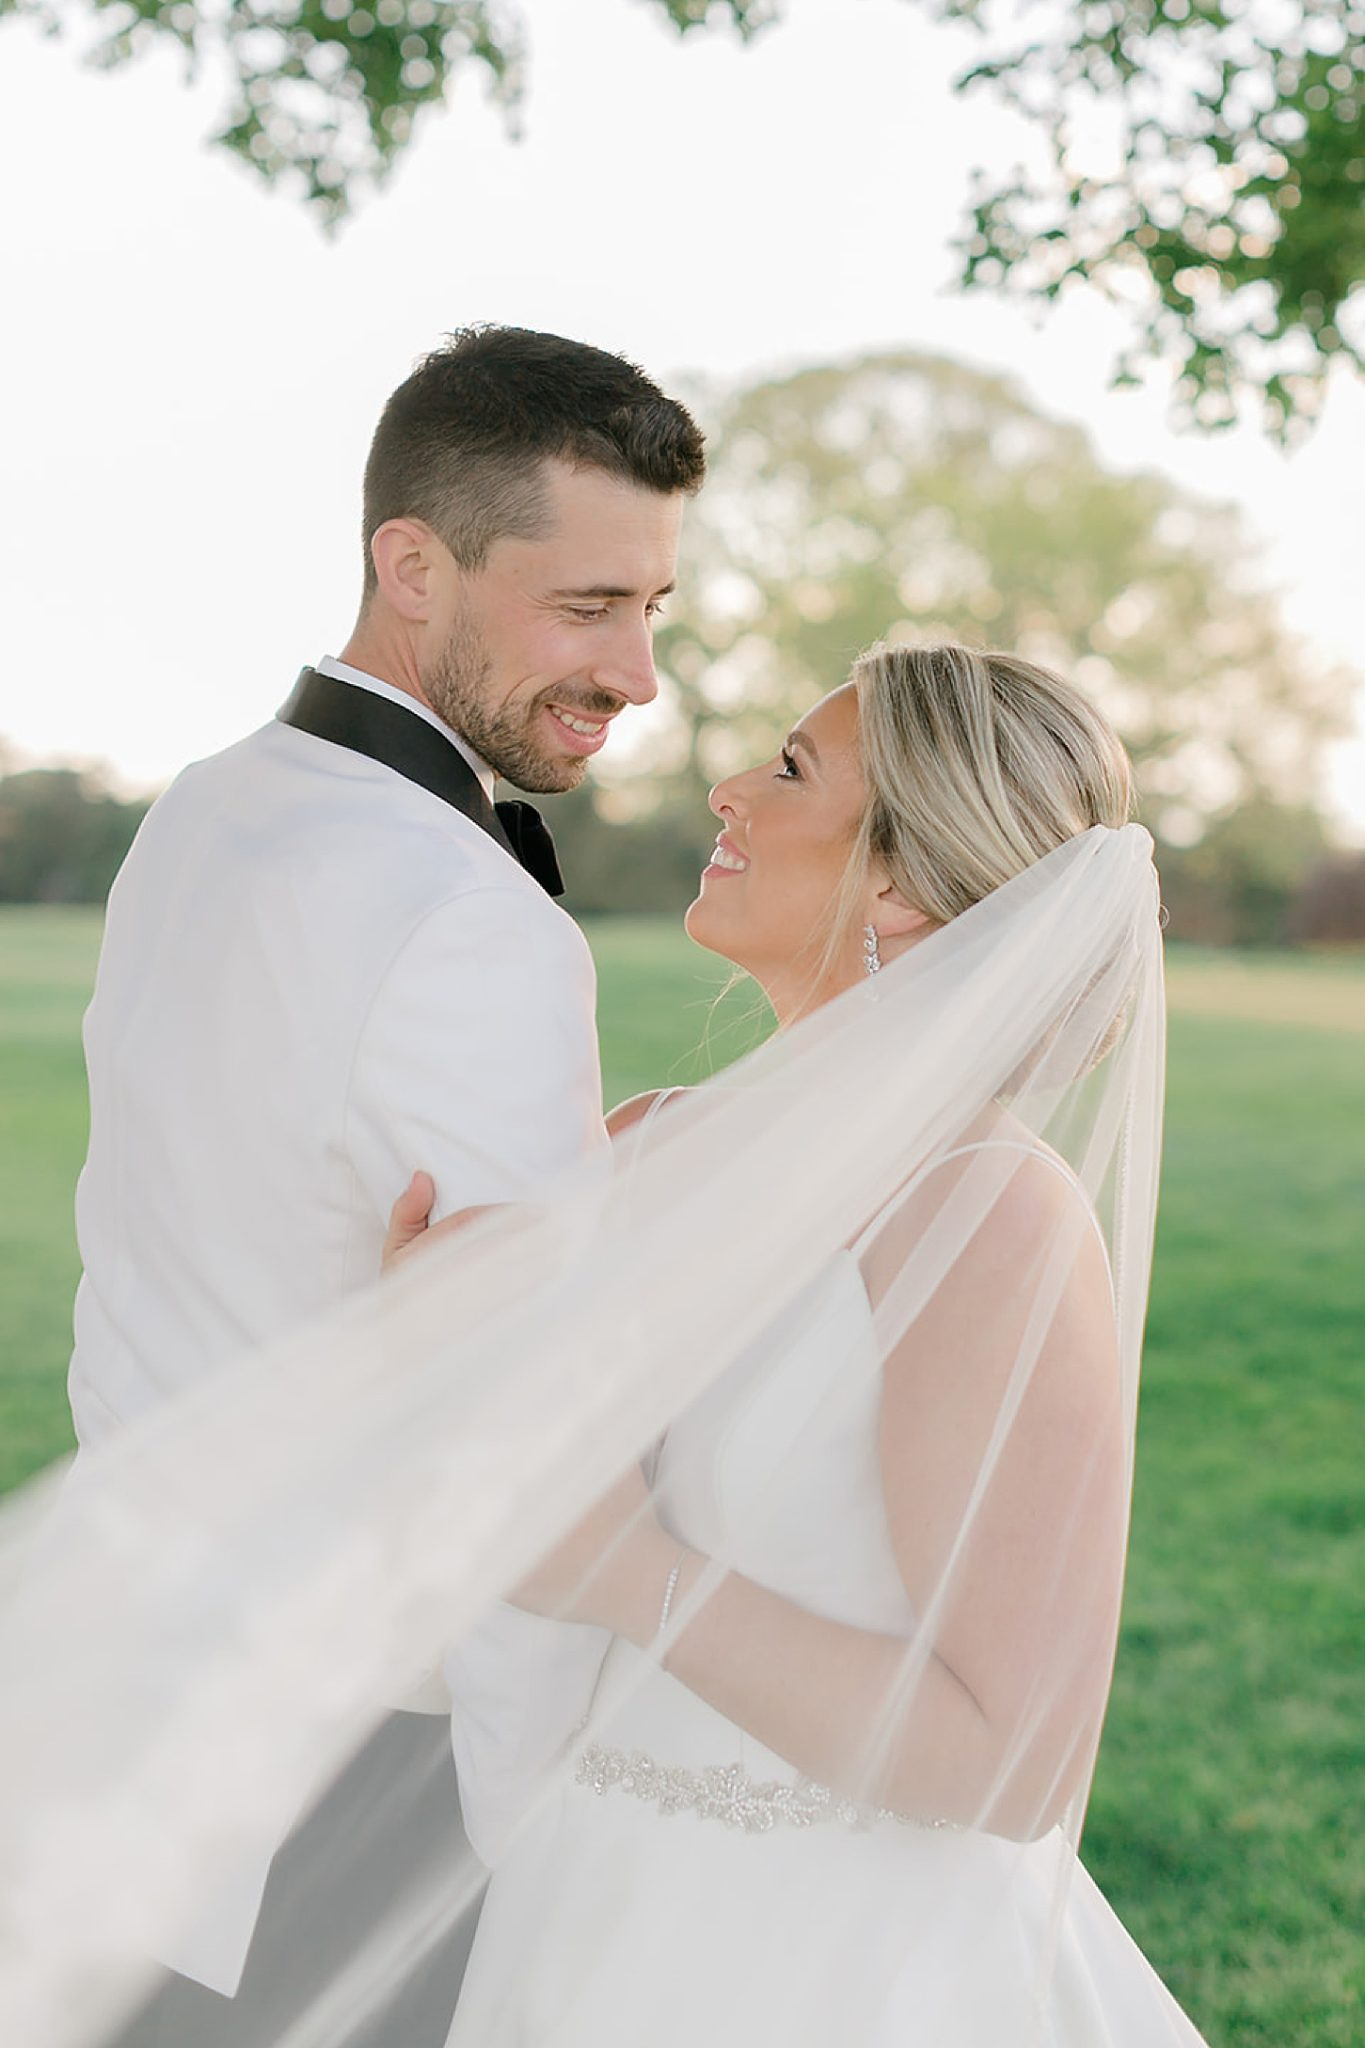 Linwood Country Club Summer Wedding Photography Studio by Magdalena Studios Jenn Kyle 0050 scaled